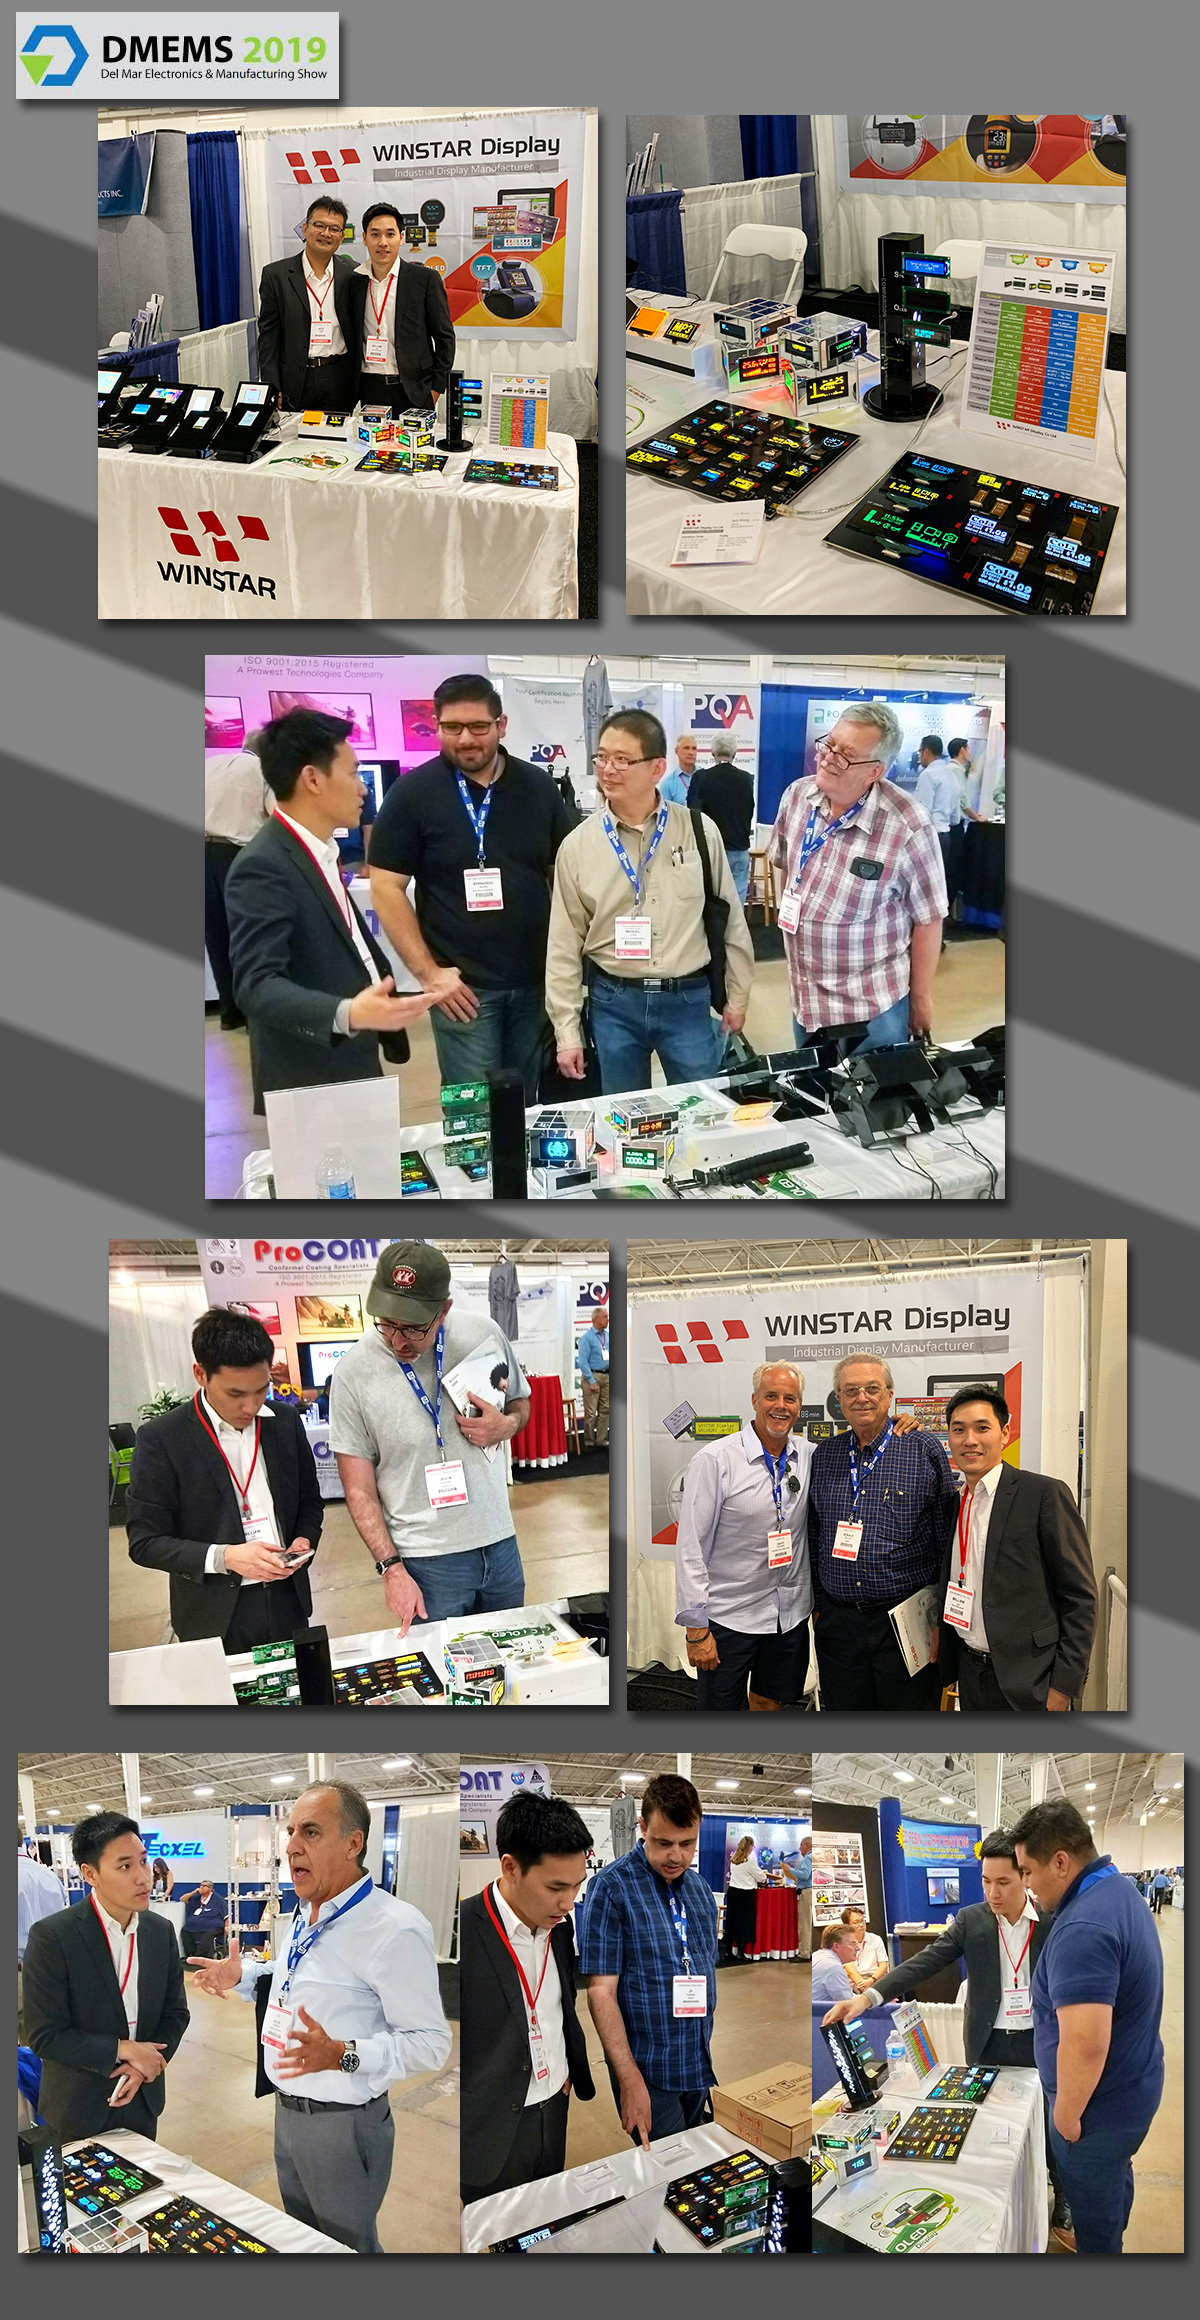 DMEMS 2019, CA - Exhibition Highlights - Winstar Display